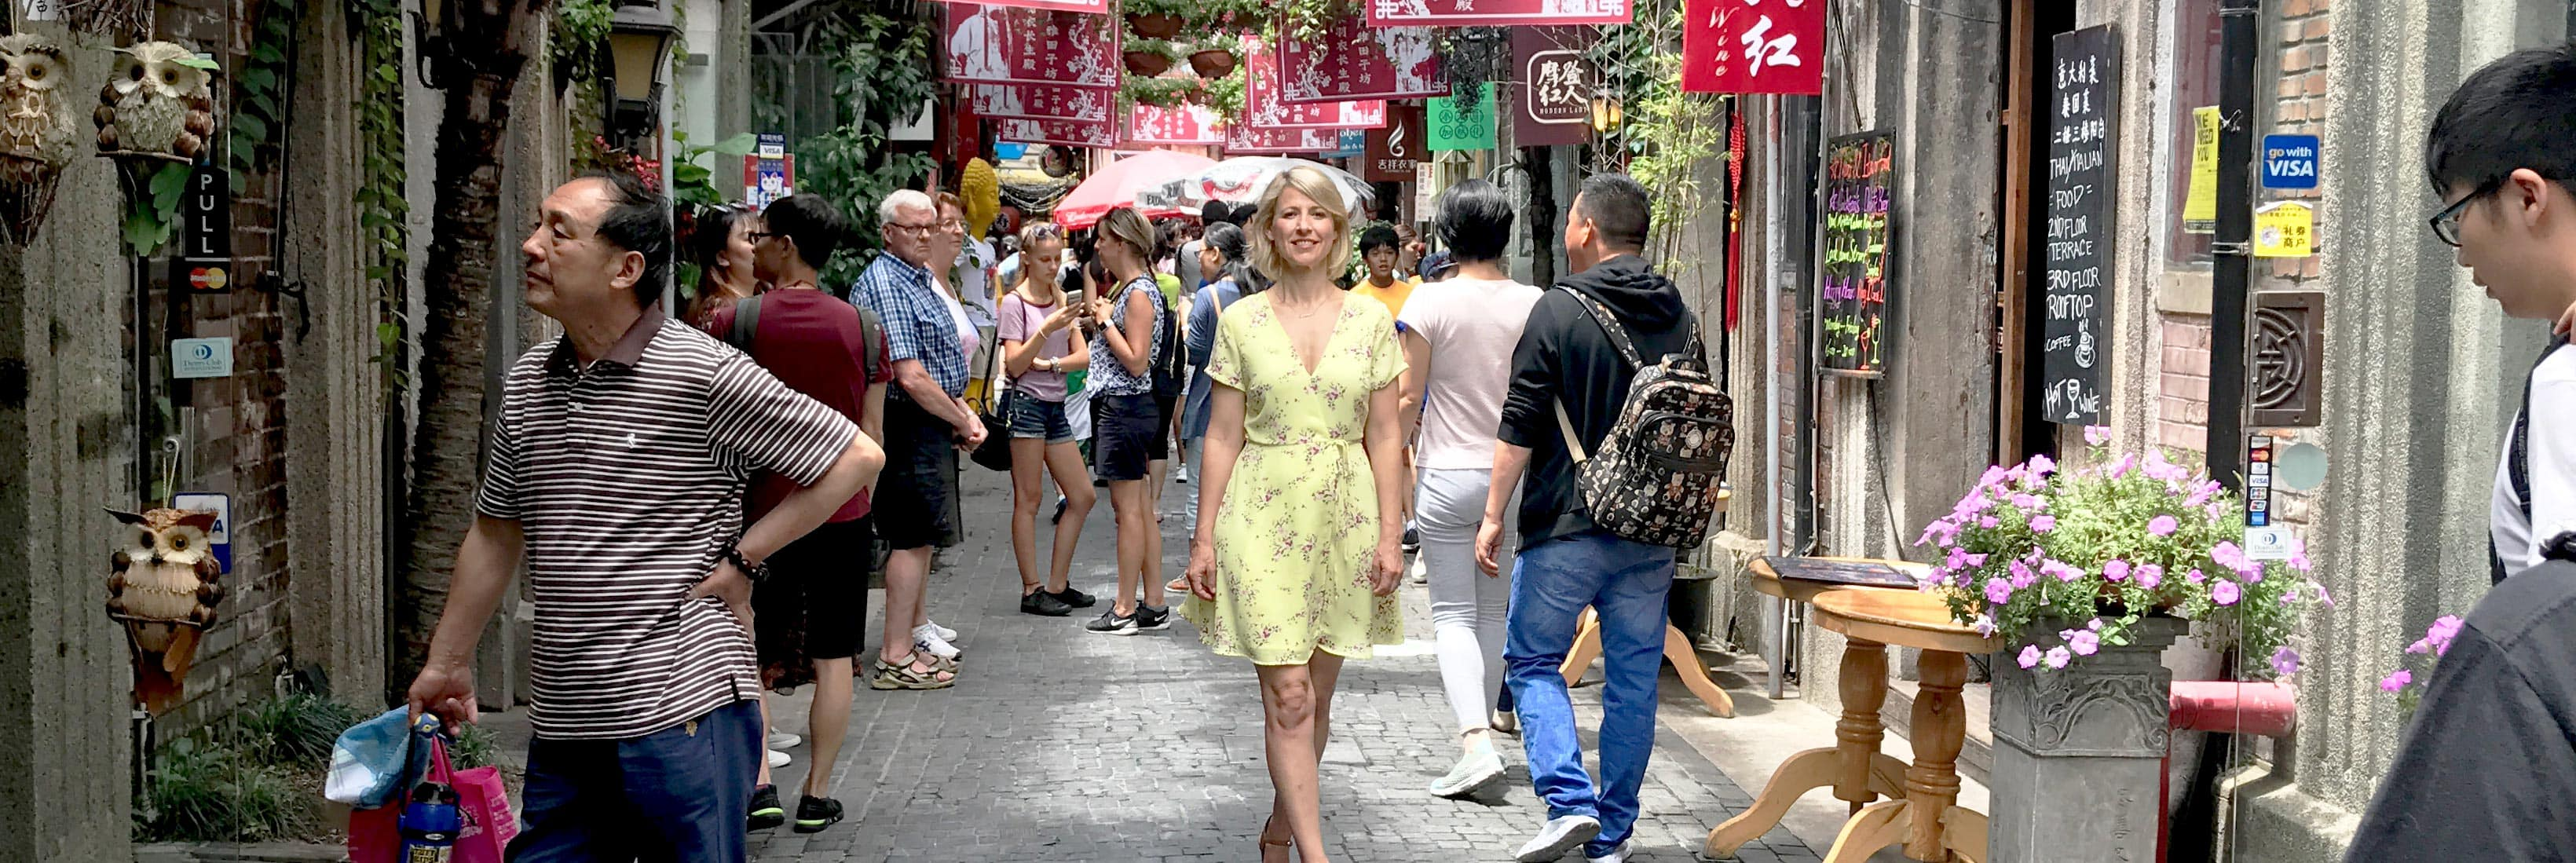 Samantha Brown - Places to Love - Shanghai